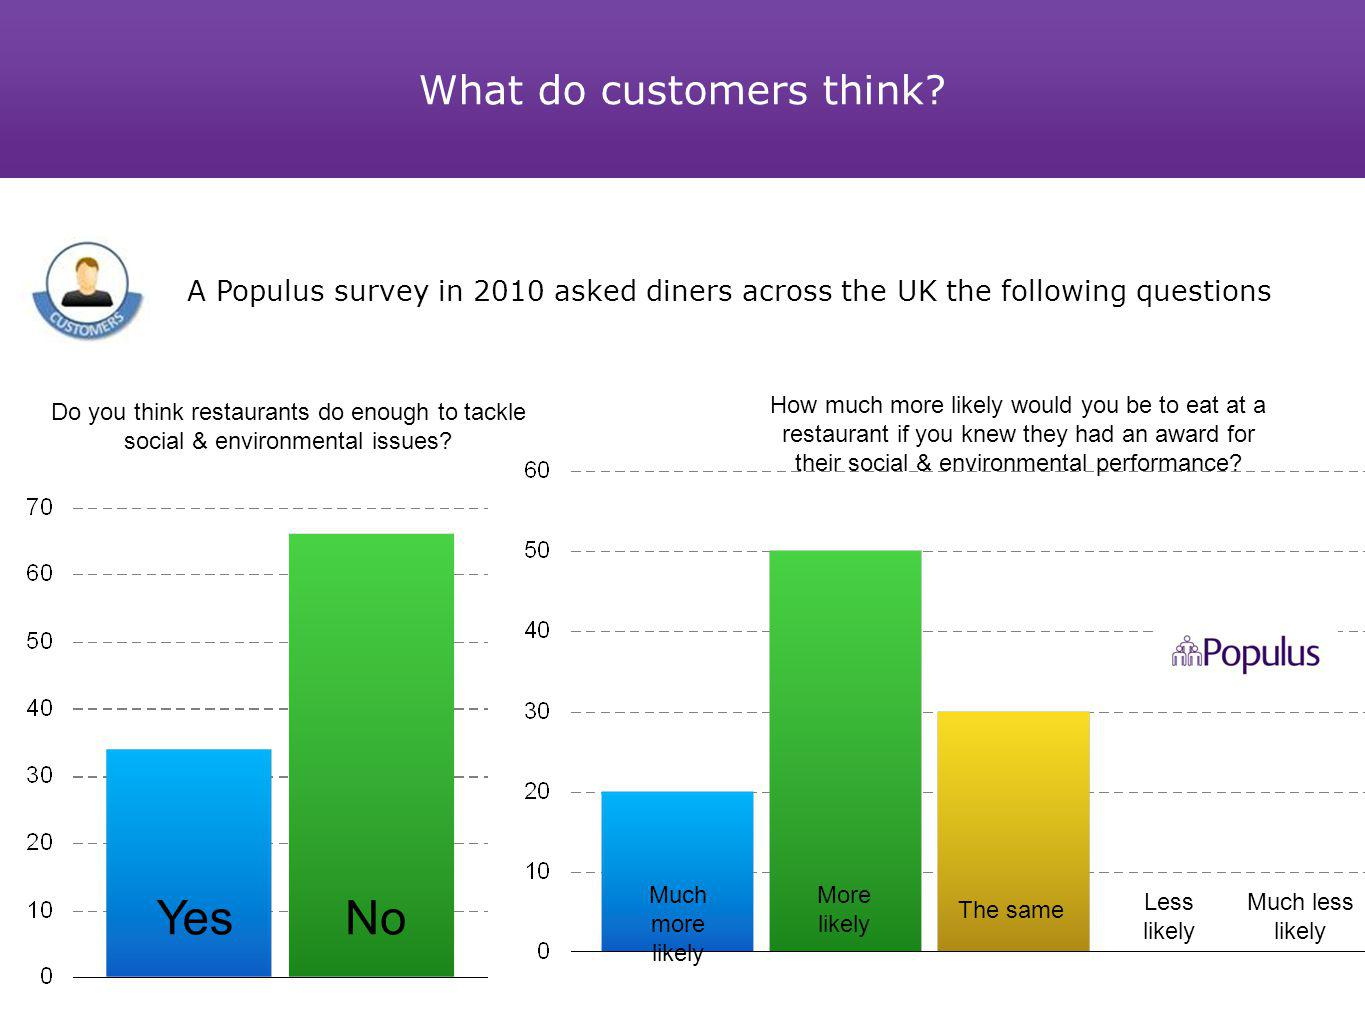 What do customers think? Do you think restaurants do enough to tackle social & environmental issues? How much more likely would you be to eat at a res